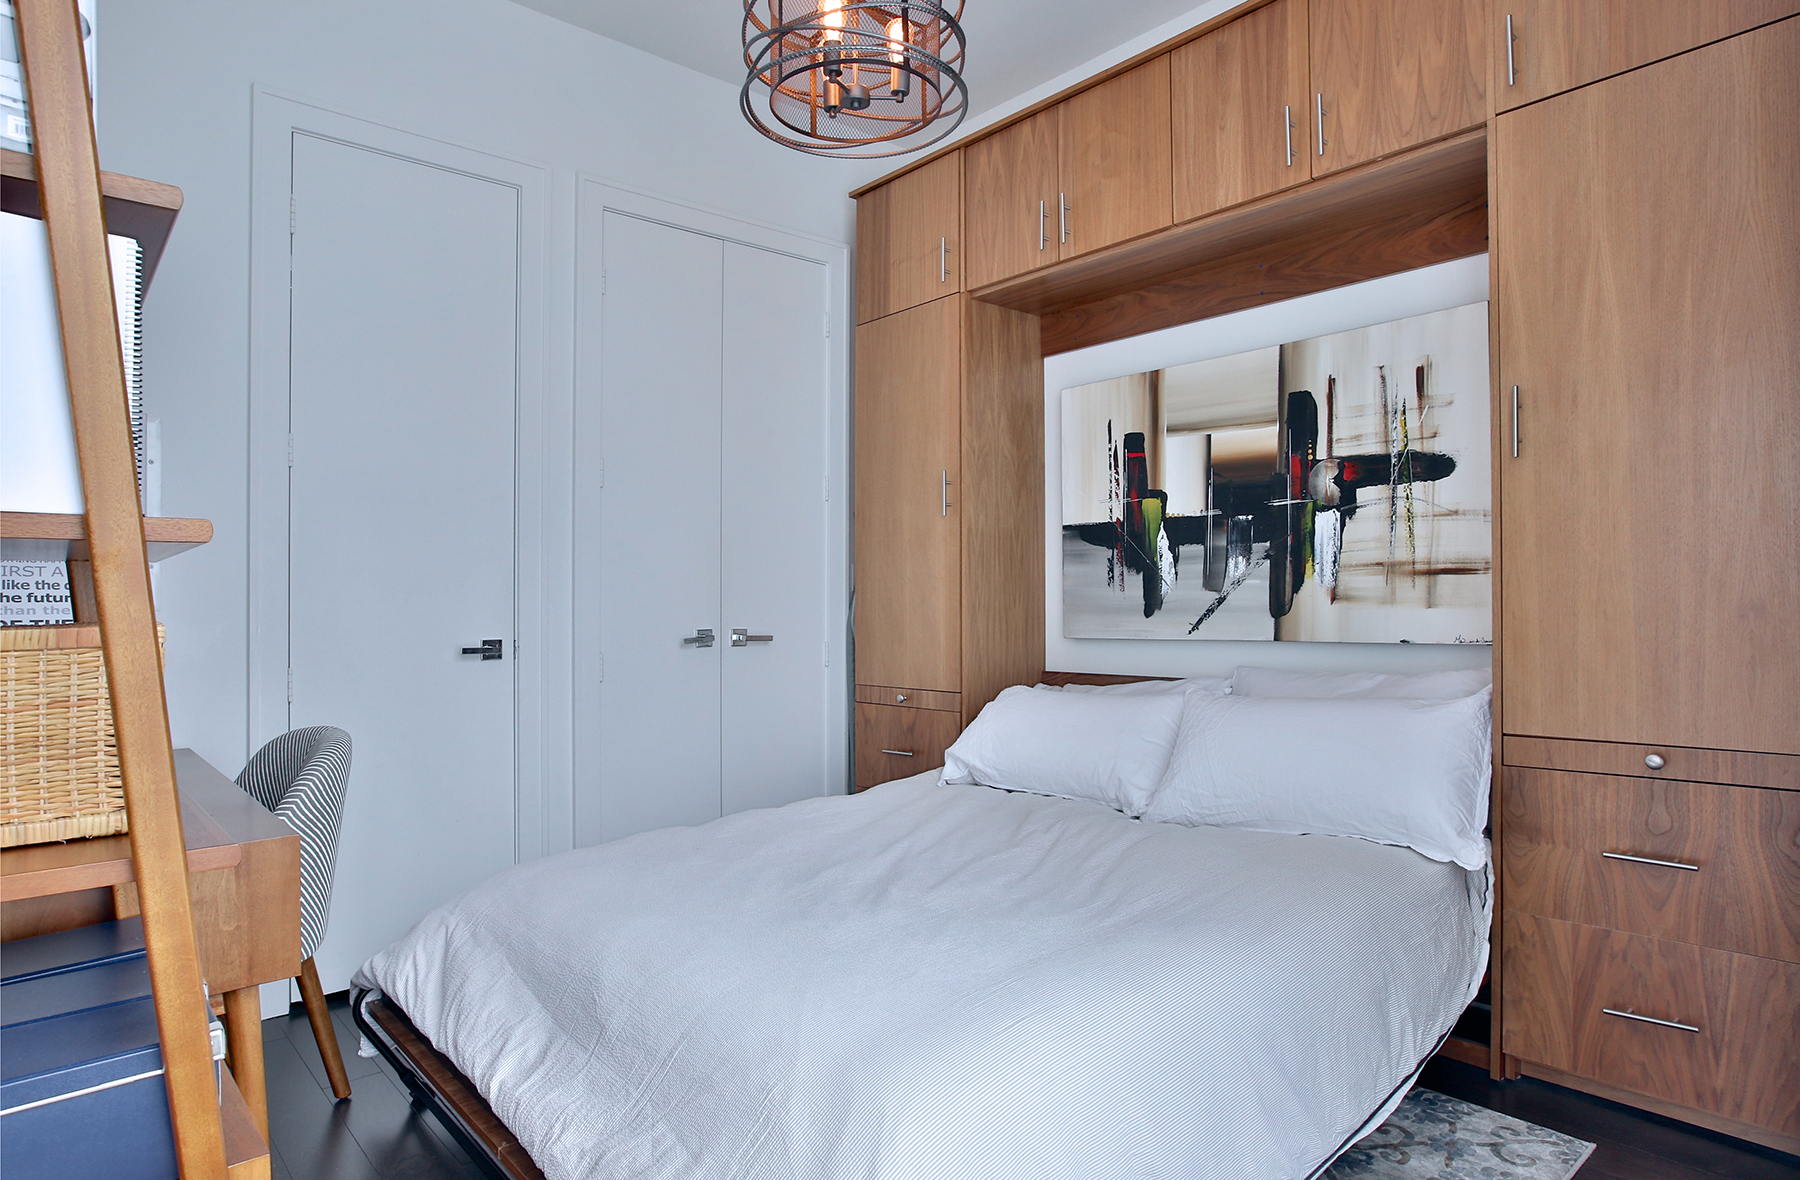 Bedroom with built in Murphy bed doubles the usable space in this room.